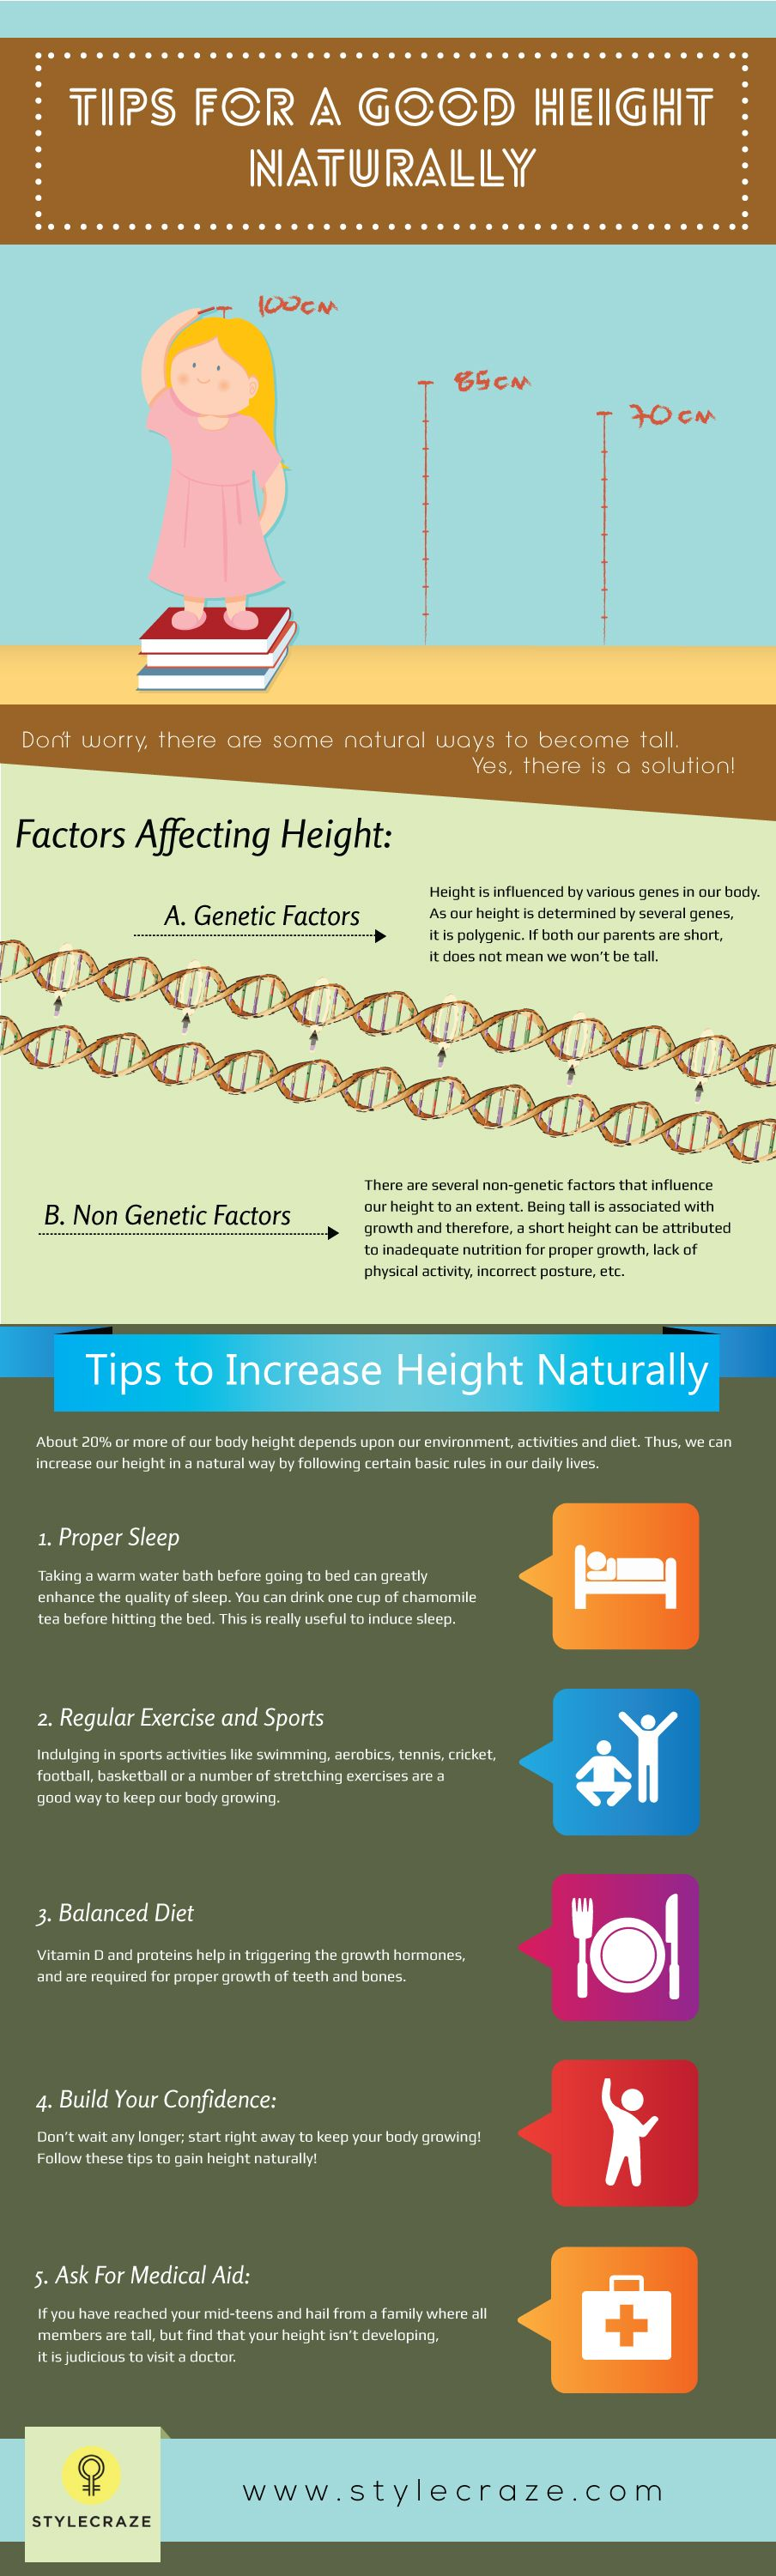 9 Simple Tips To Increase Height Naturally Loveyourself Tips To Increase Height How To Grow